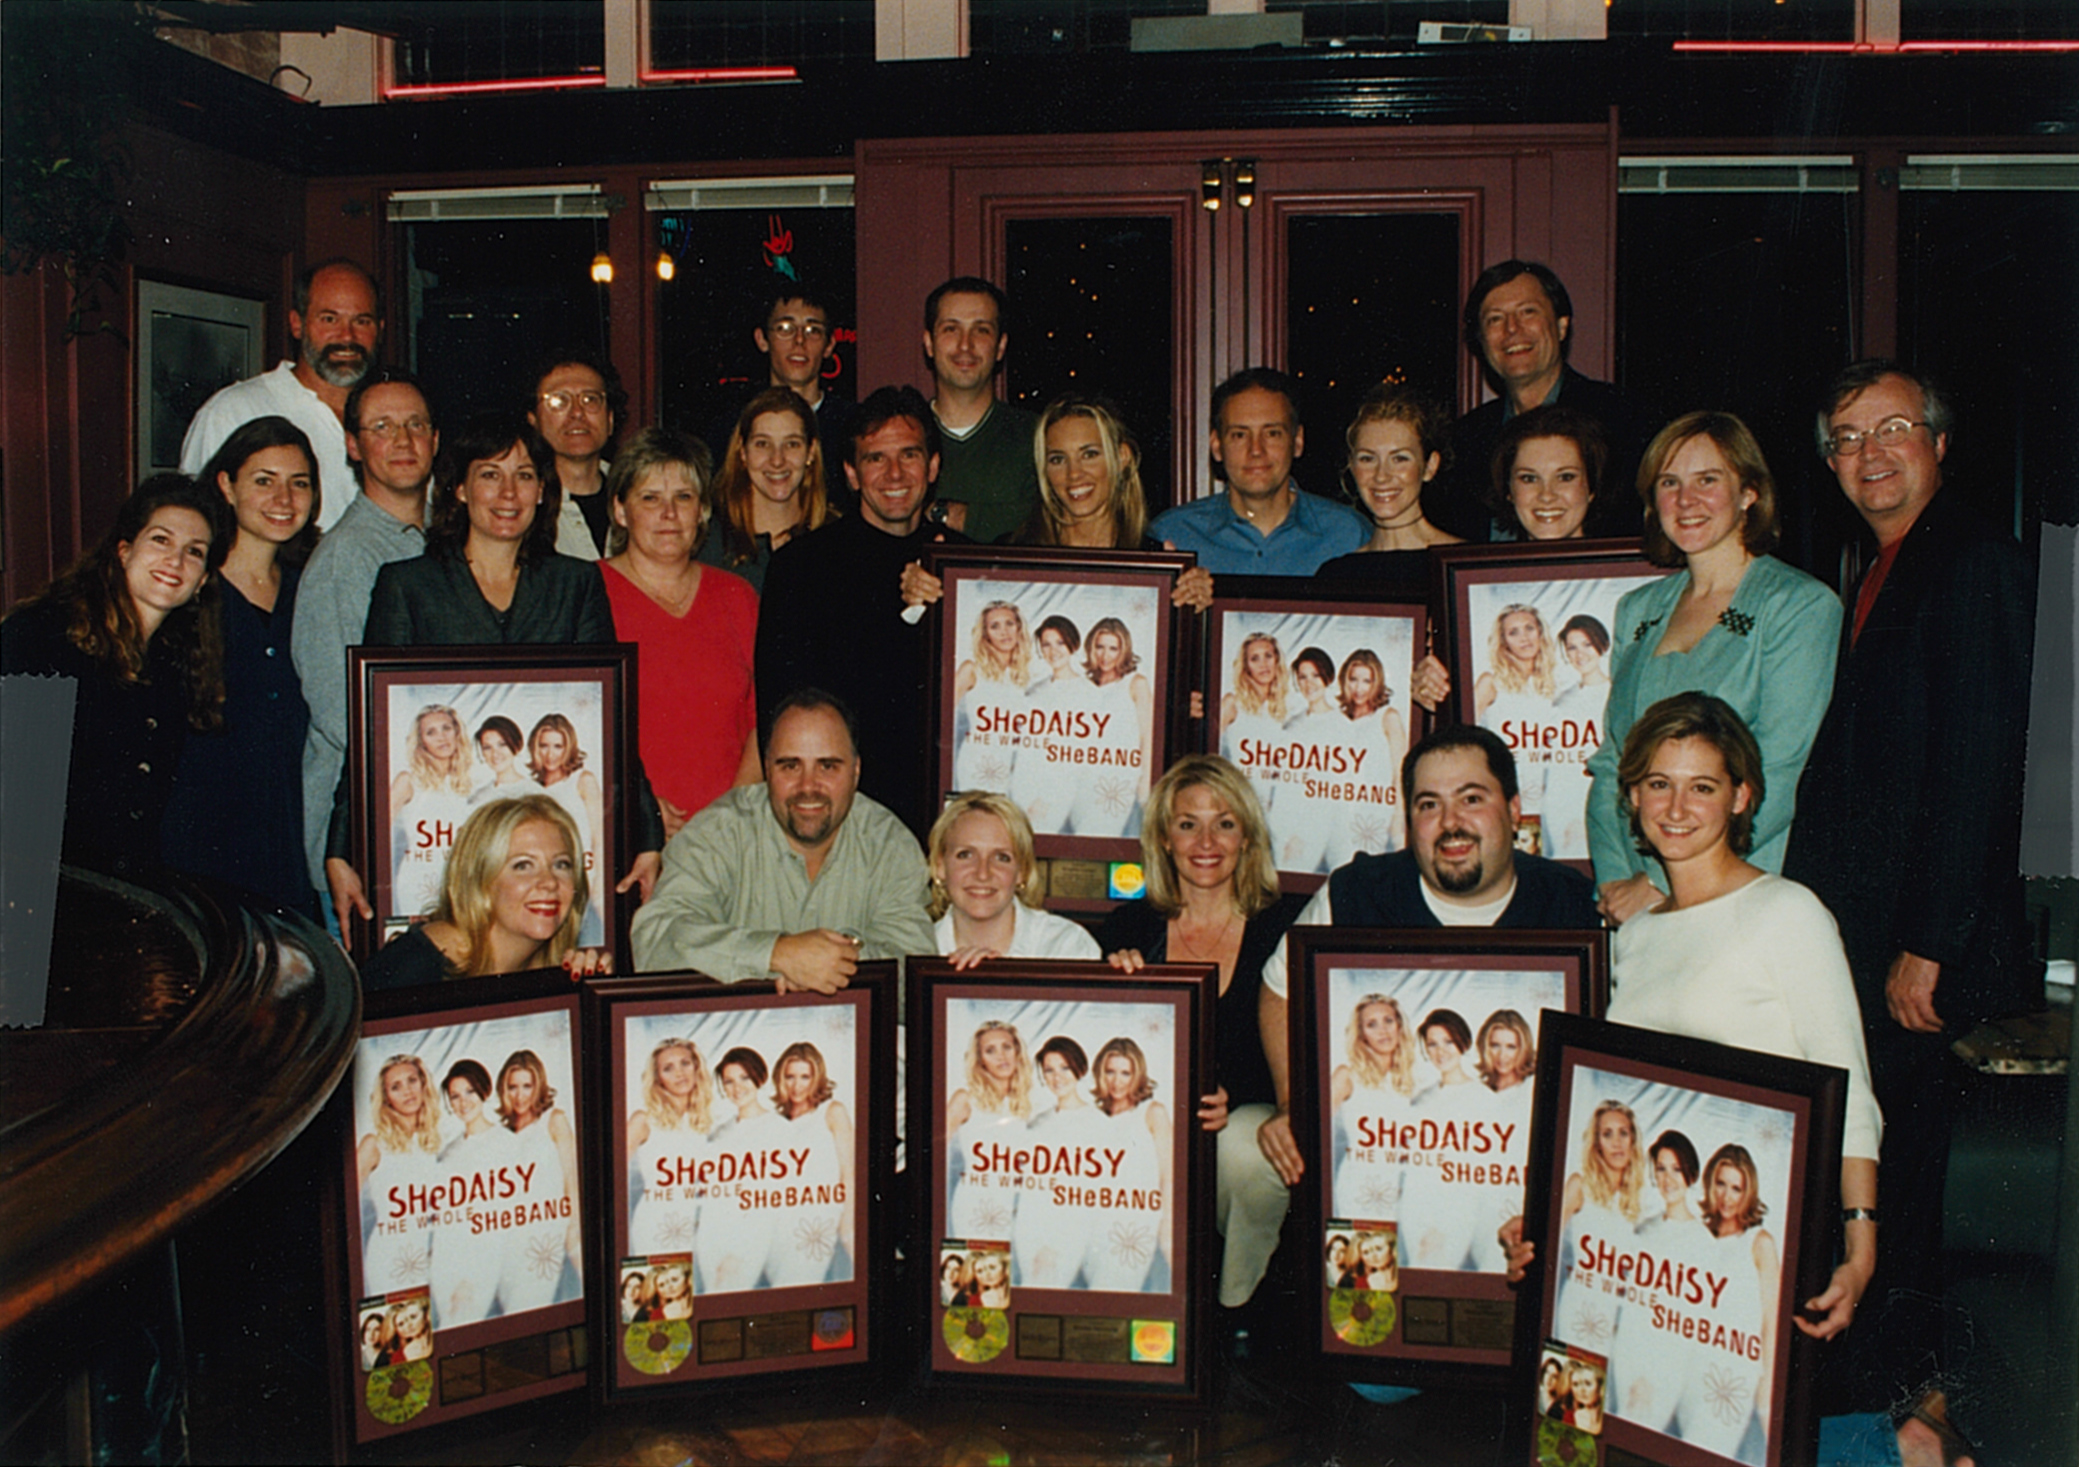 Celebrating Platinum sales success of the SheDaisy album The Whole SheBang with the entire staff of Lyric Street Records